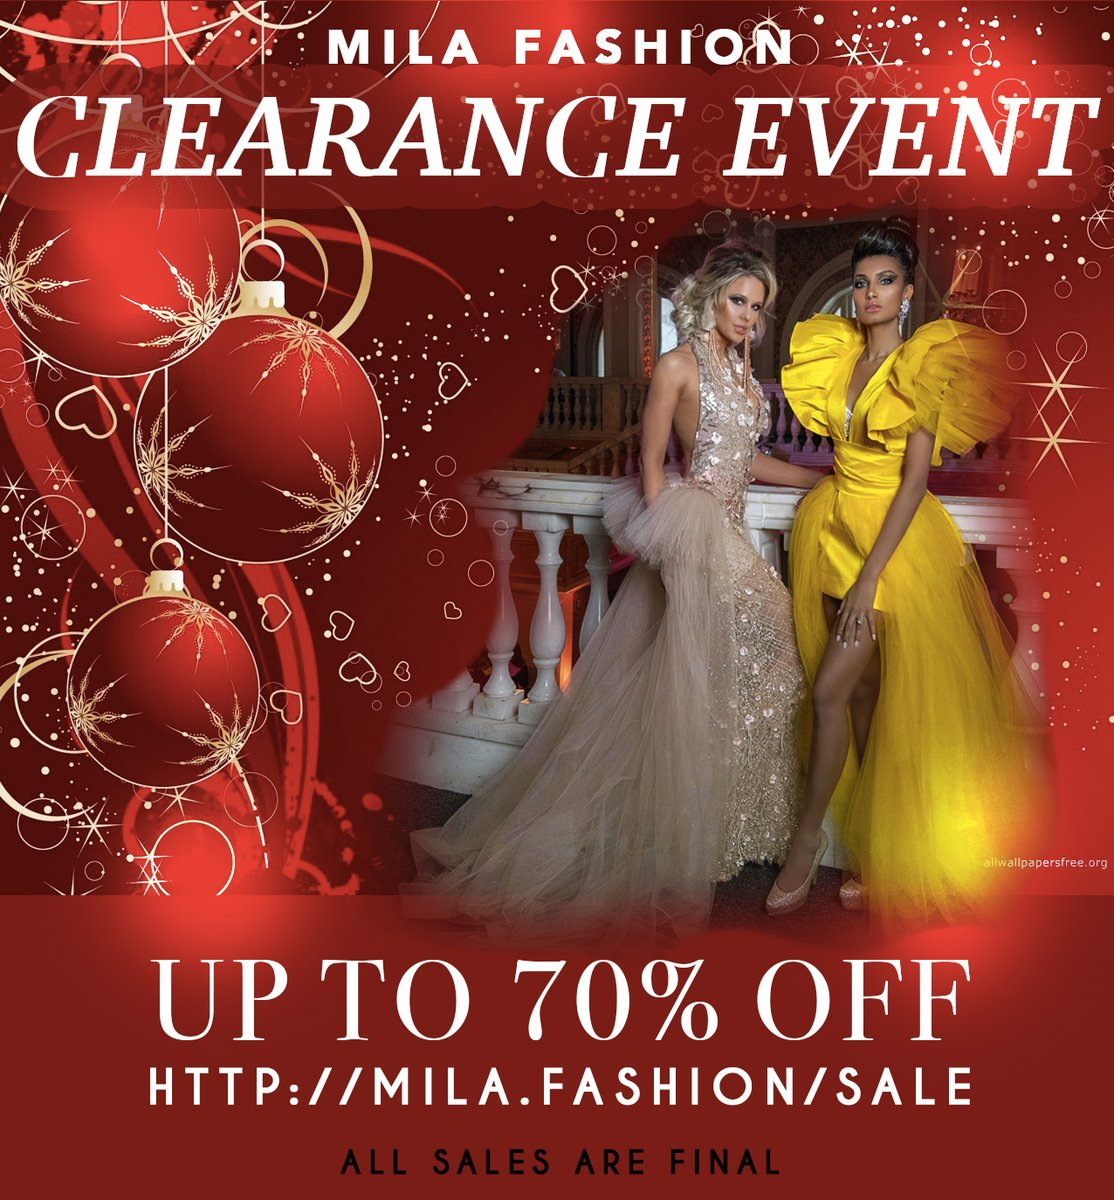 HUGE #clearance https://mila.fashion/sale #celebrities #sale #weddingdress #celebritystylist #redcarpet #lafashion #lastylist #promdress #redcarpet #shopping #shoppingqueen  #lastreetstyle #ootd #influencer #fashionphotography #mogels #couturegowns #couture #styledbyme #holidayspic.twitter.com/iQTRUteQLL